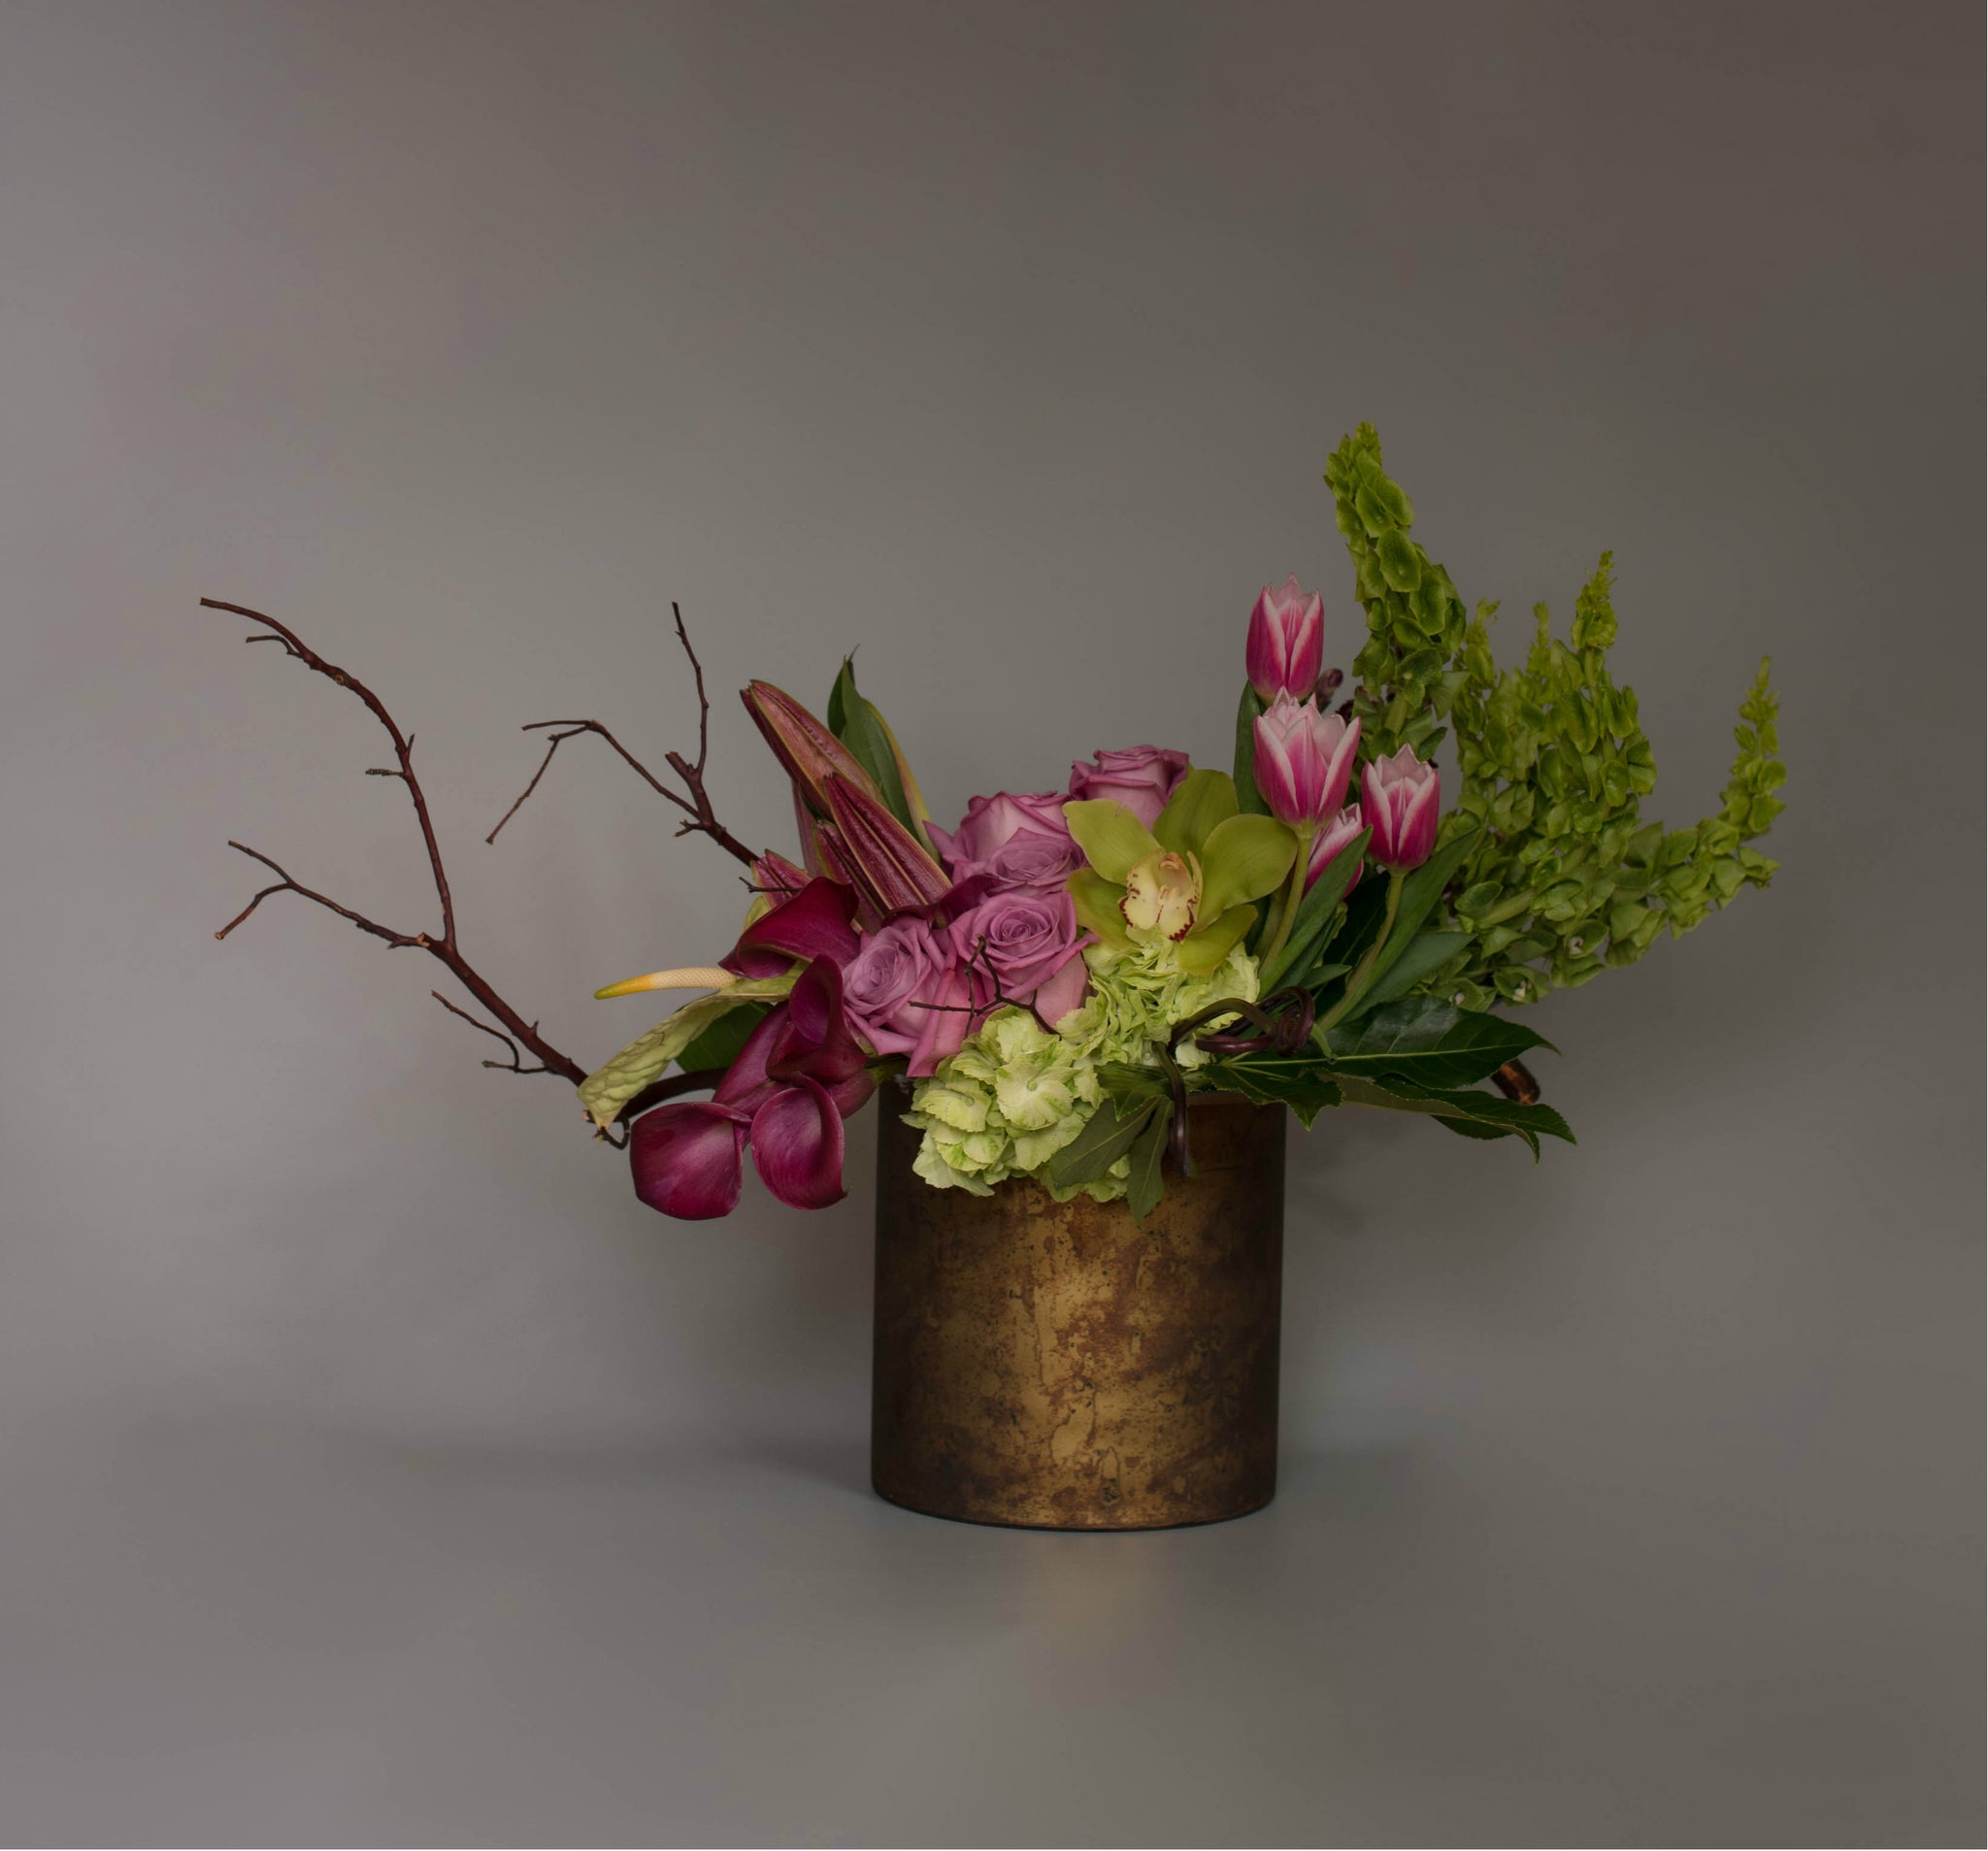 Reaching Manzanita, with grouped florals in copper antiqued container